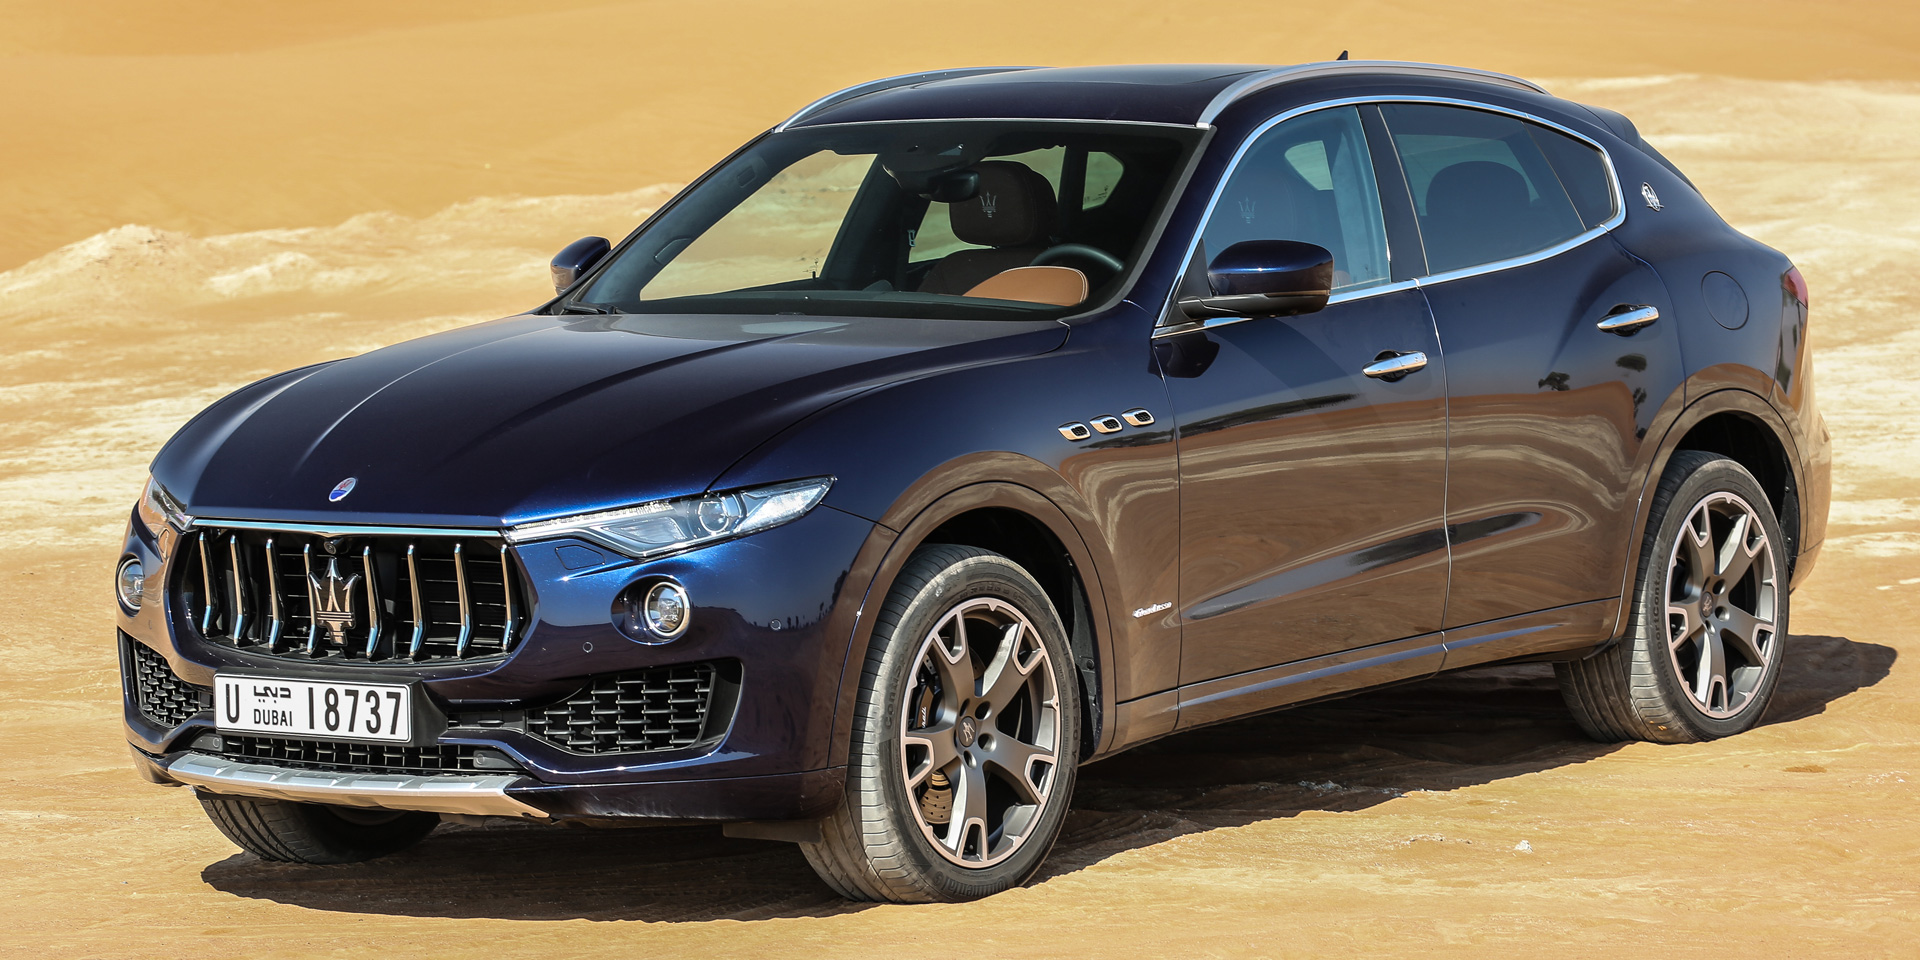 2018 Maserati Levante Vehicles On Display Chicago Auto Show